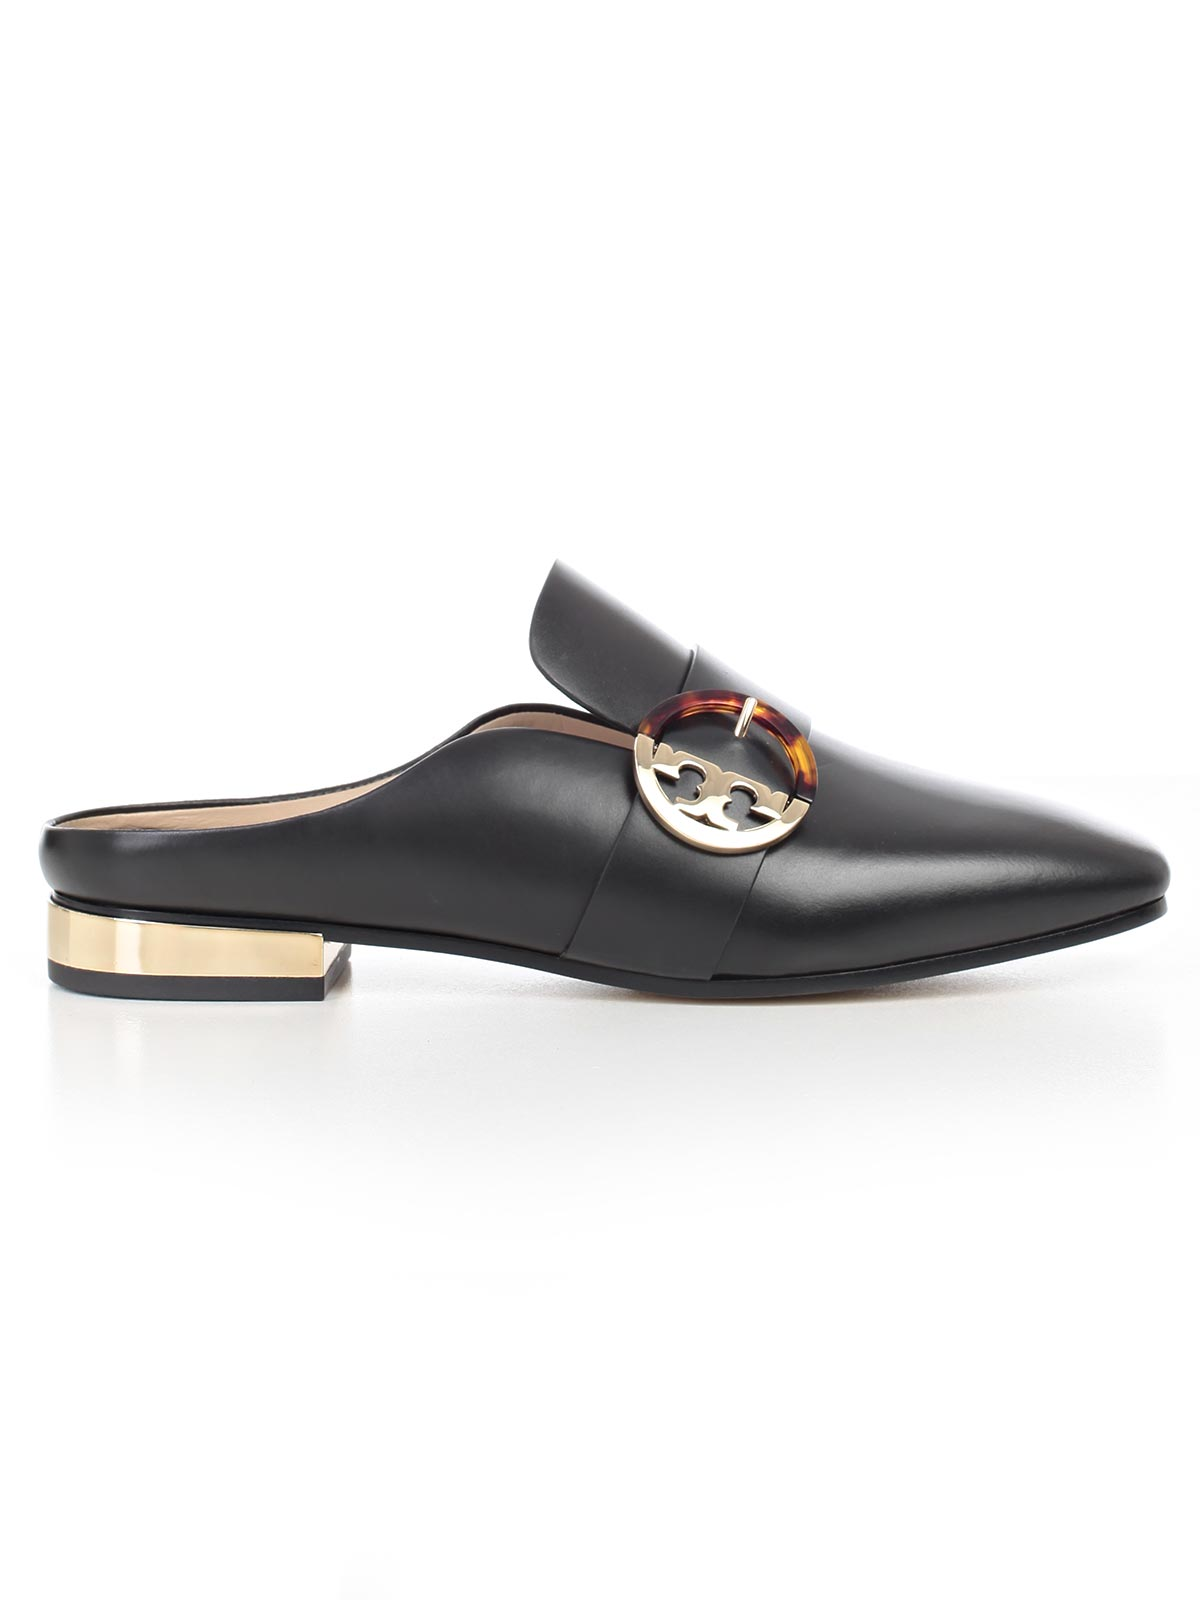 Picture of TORY BURCH Loafers